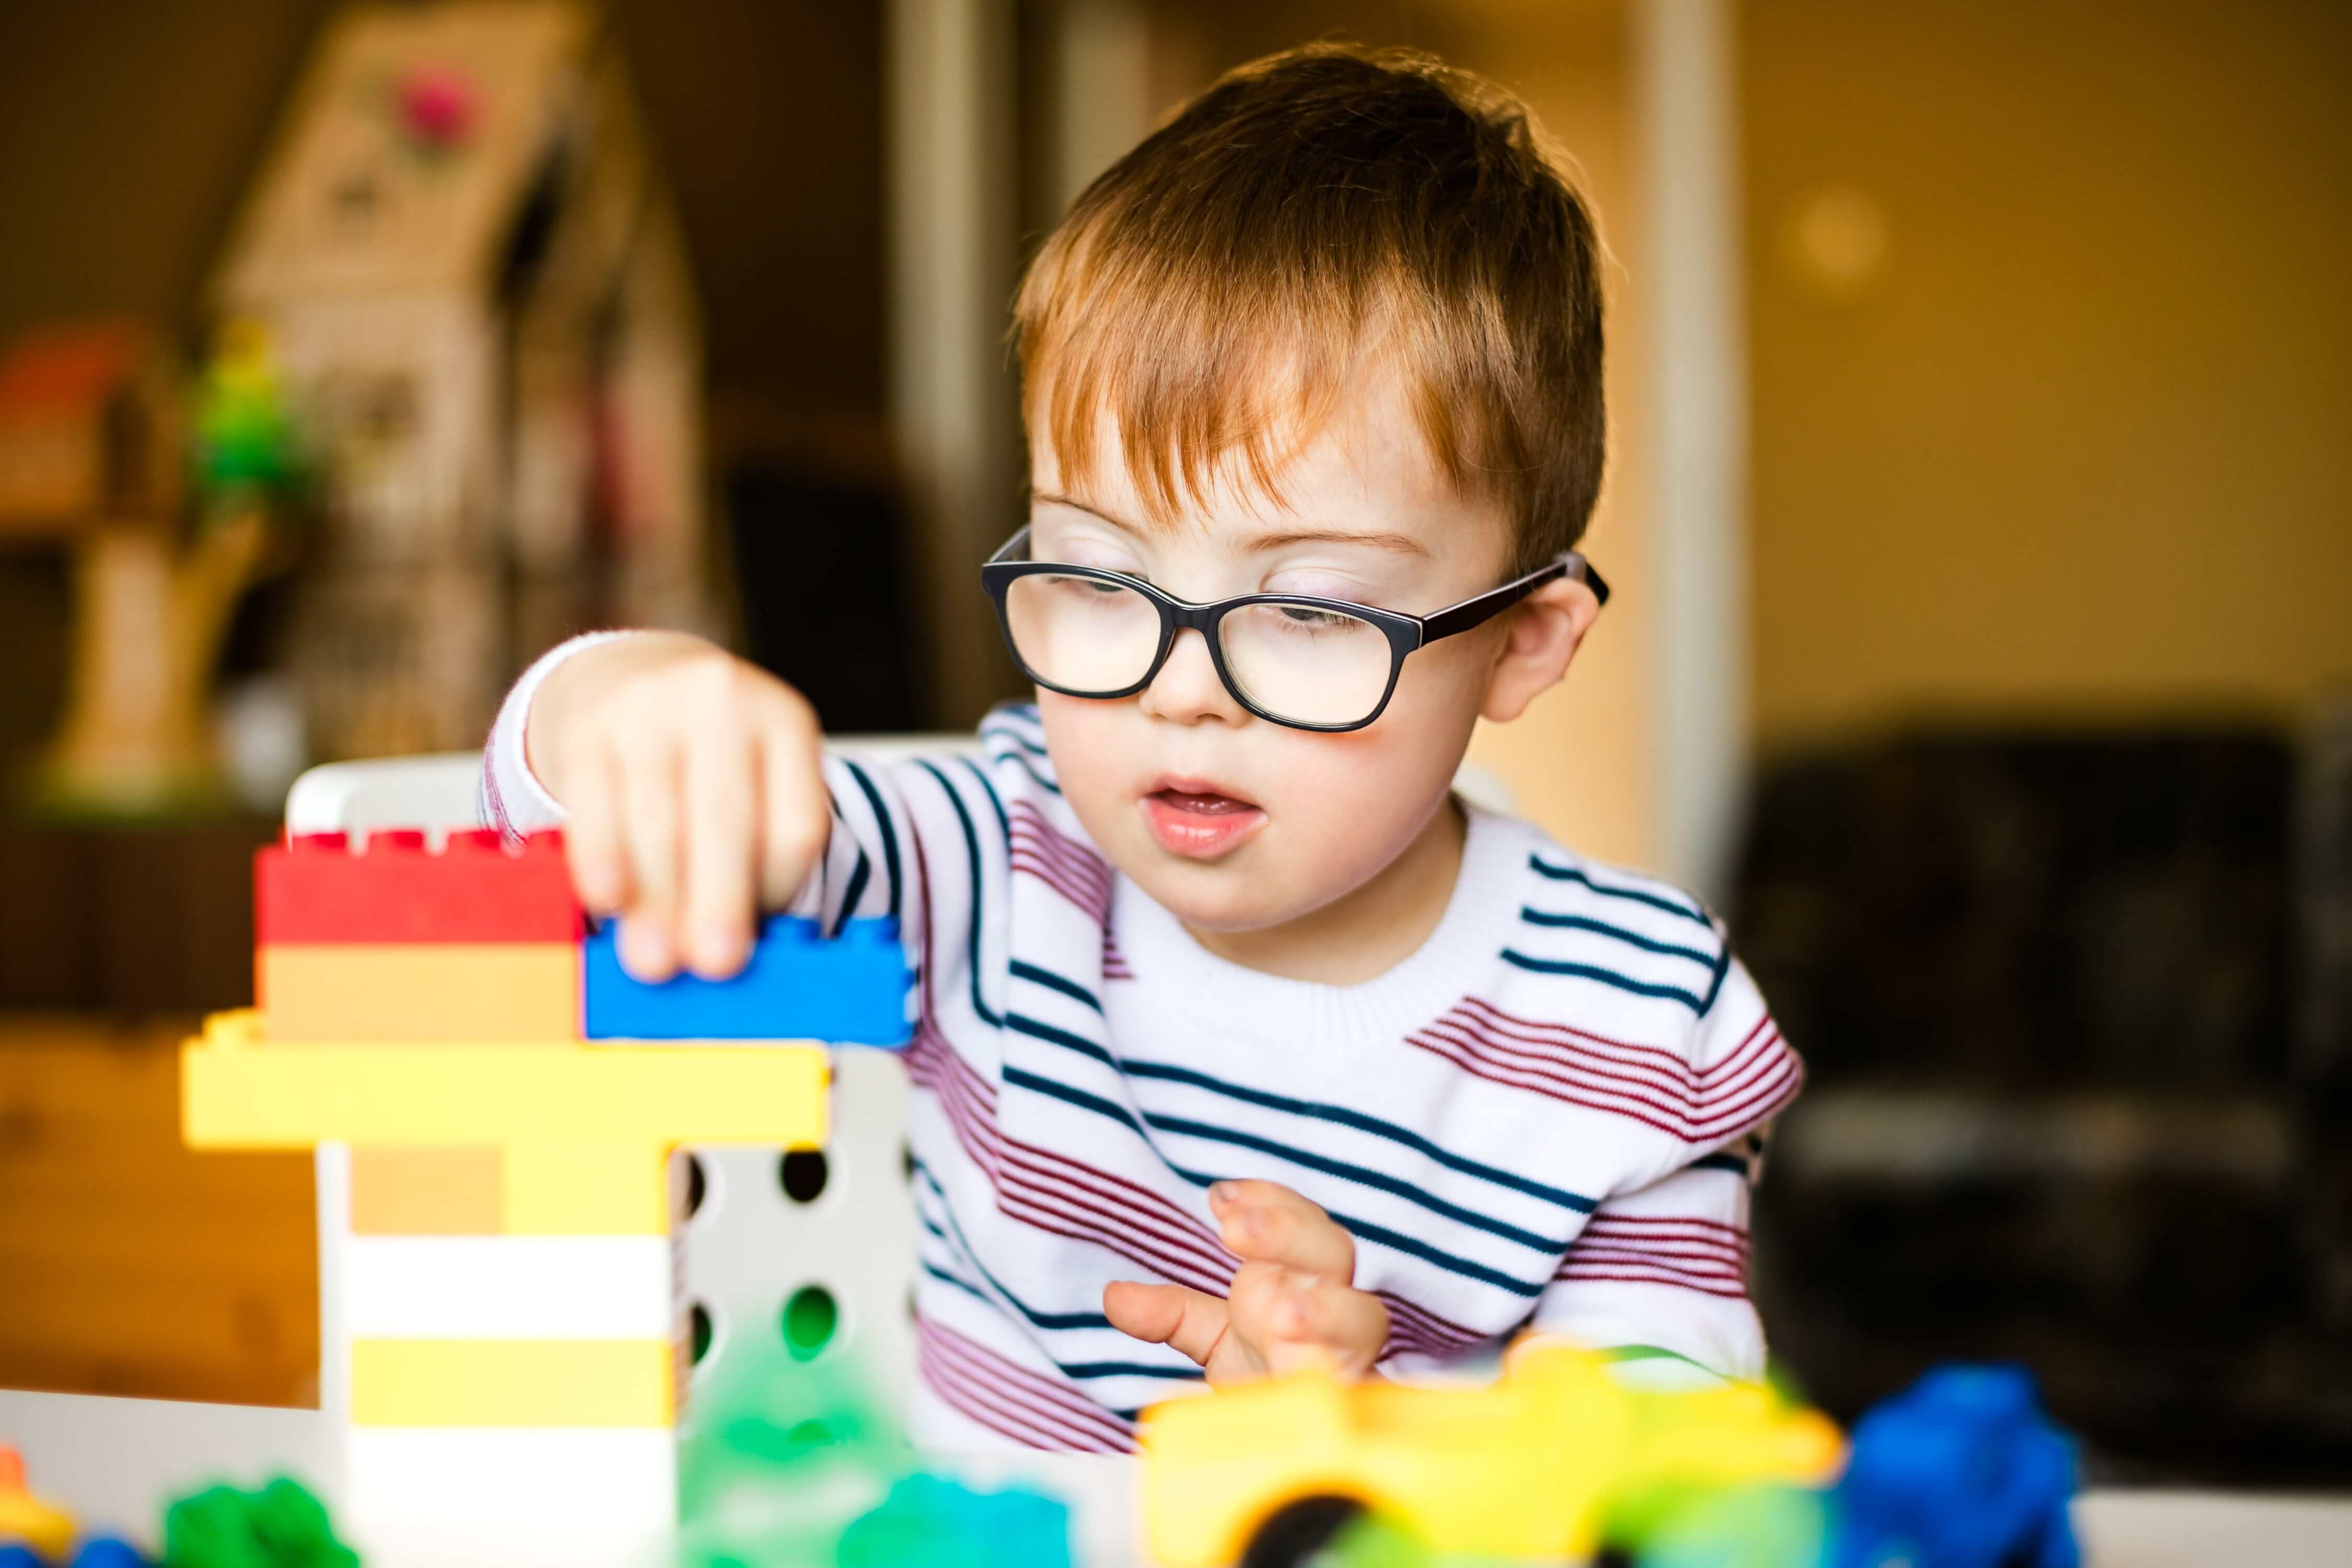 Young boy playing with coloured building blocks